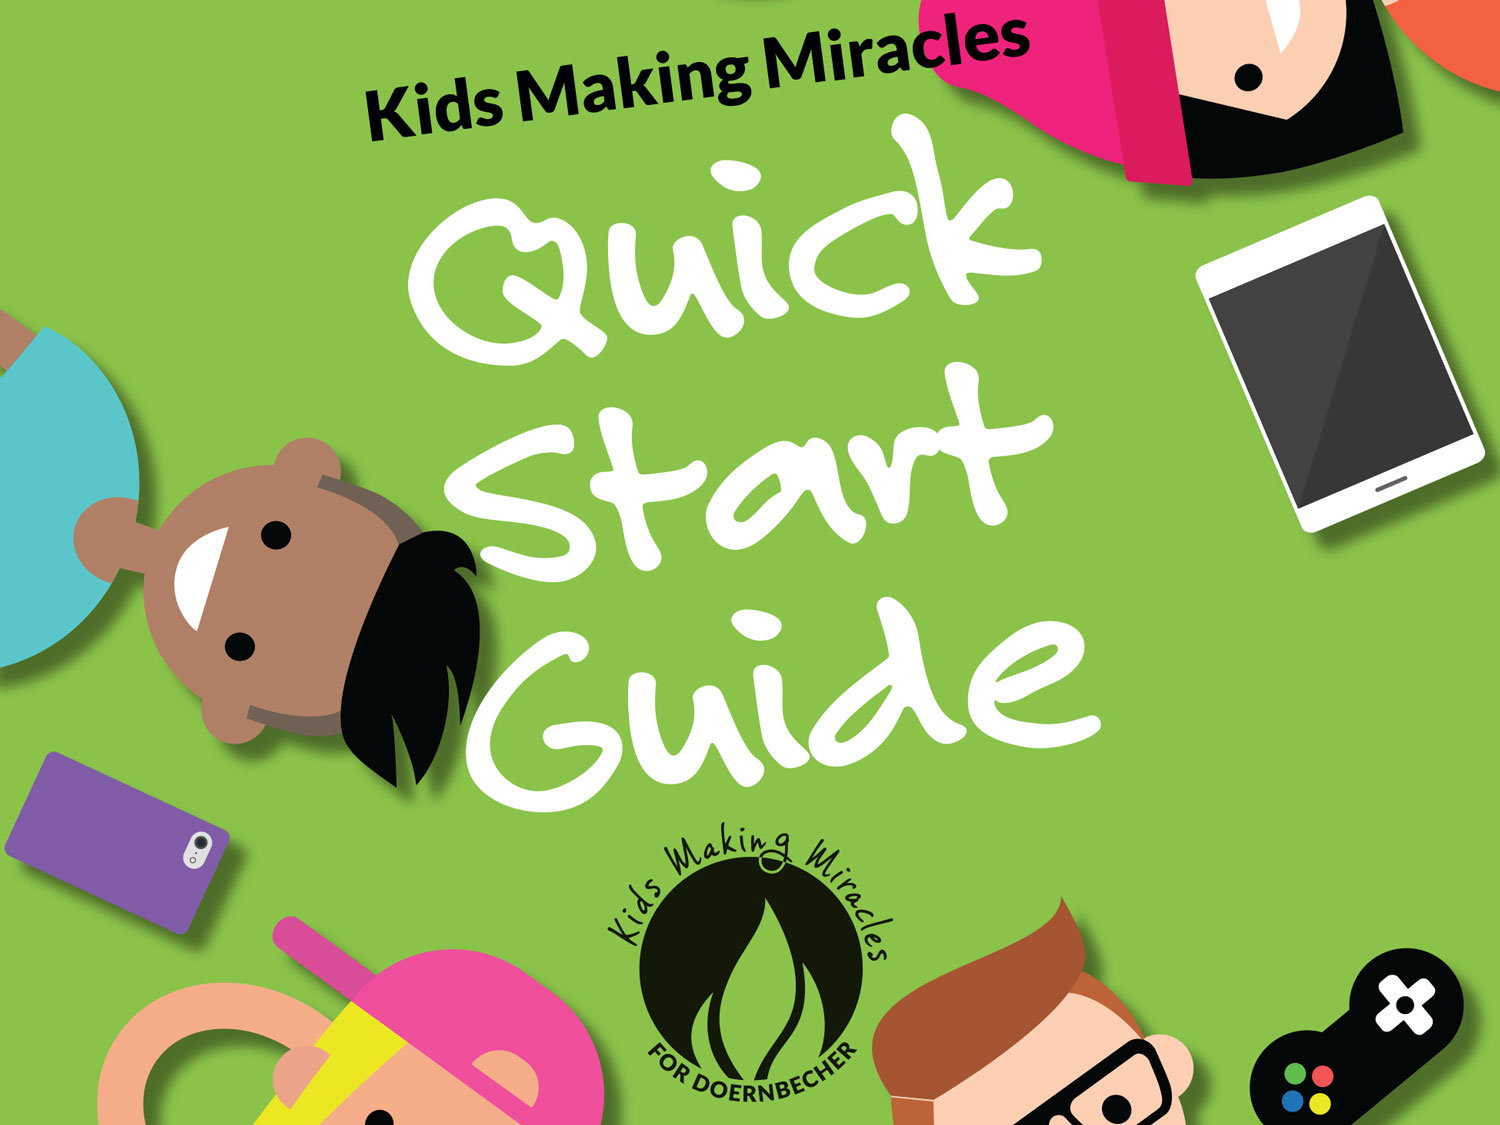 Kids Making Miracles quick start guide